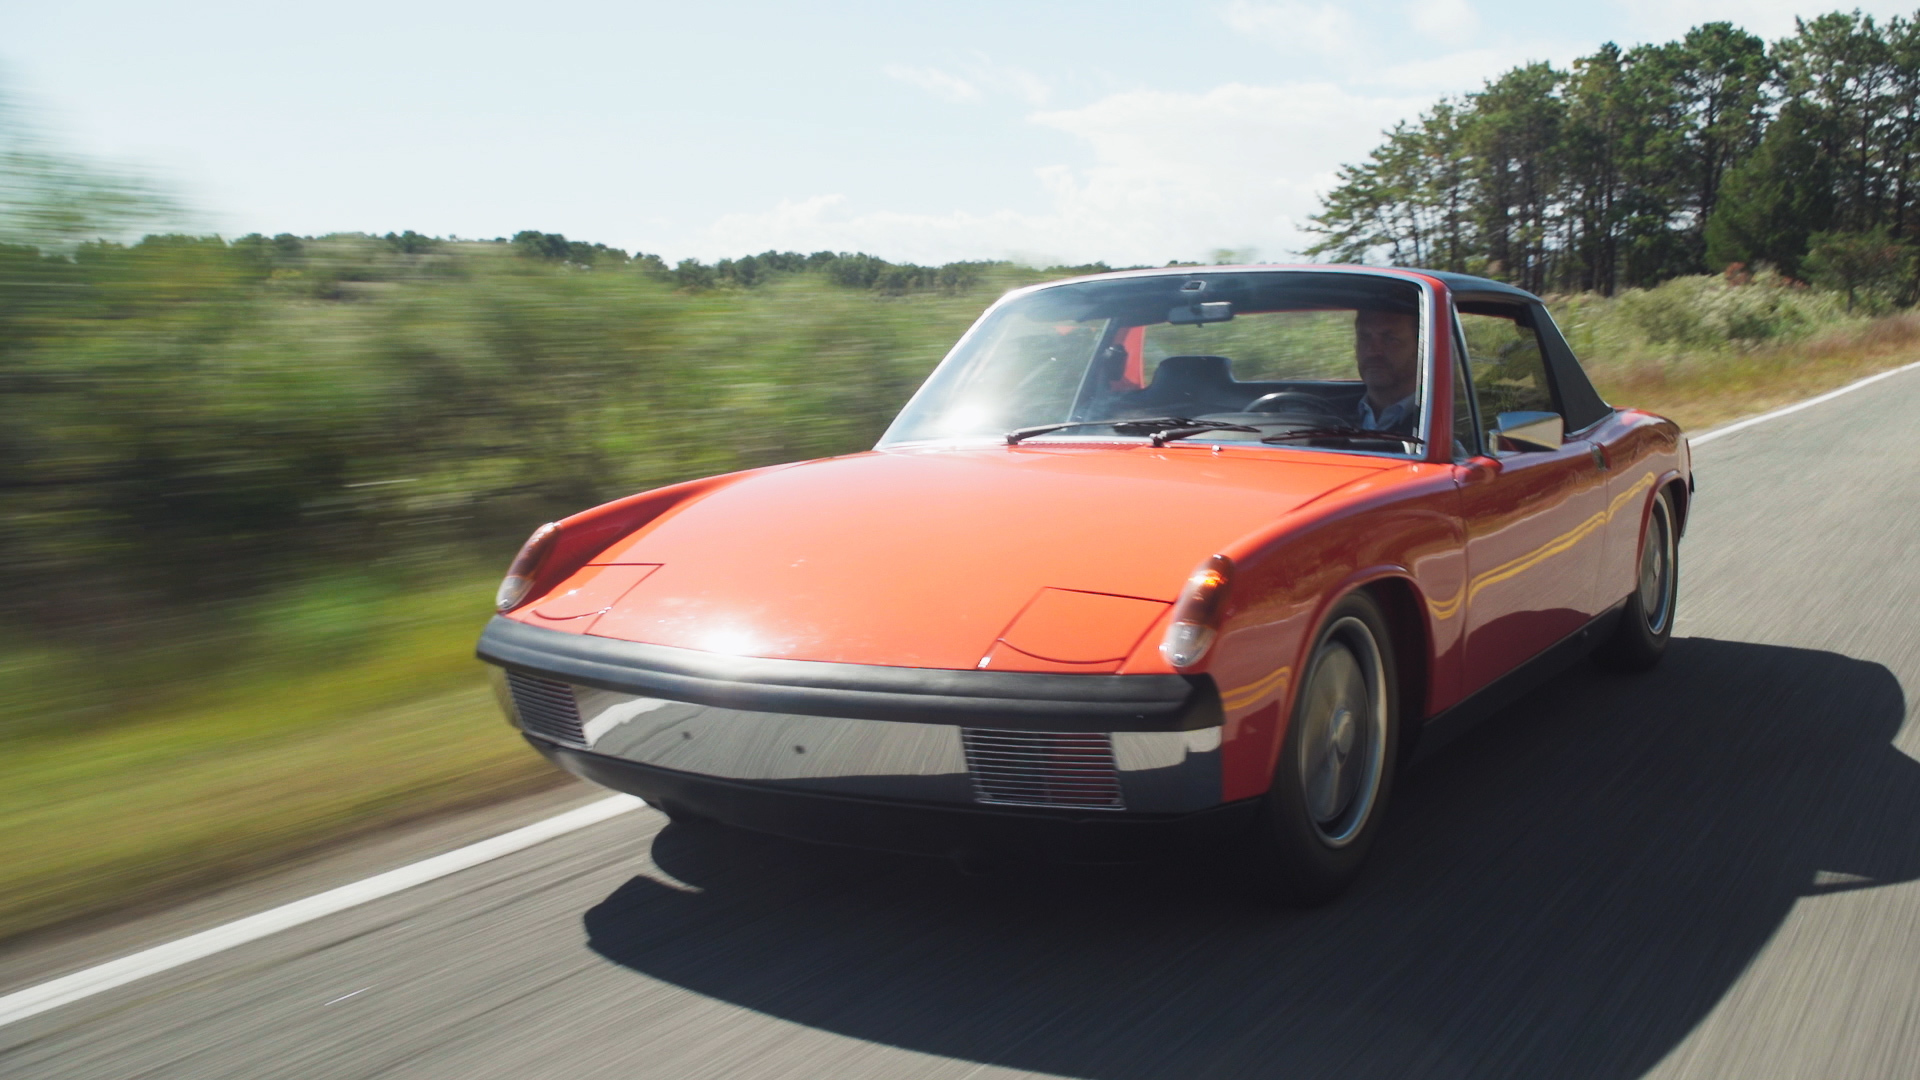 Drives Unexpected - Justin Bell - in a Porsche 914